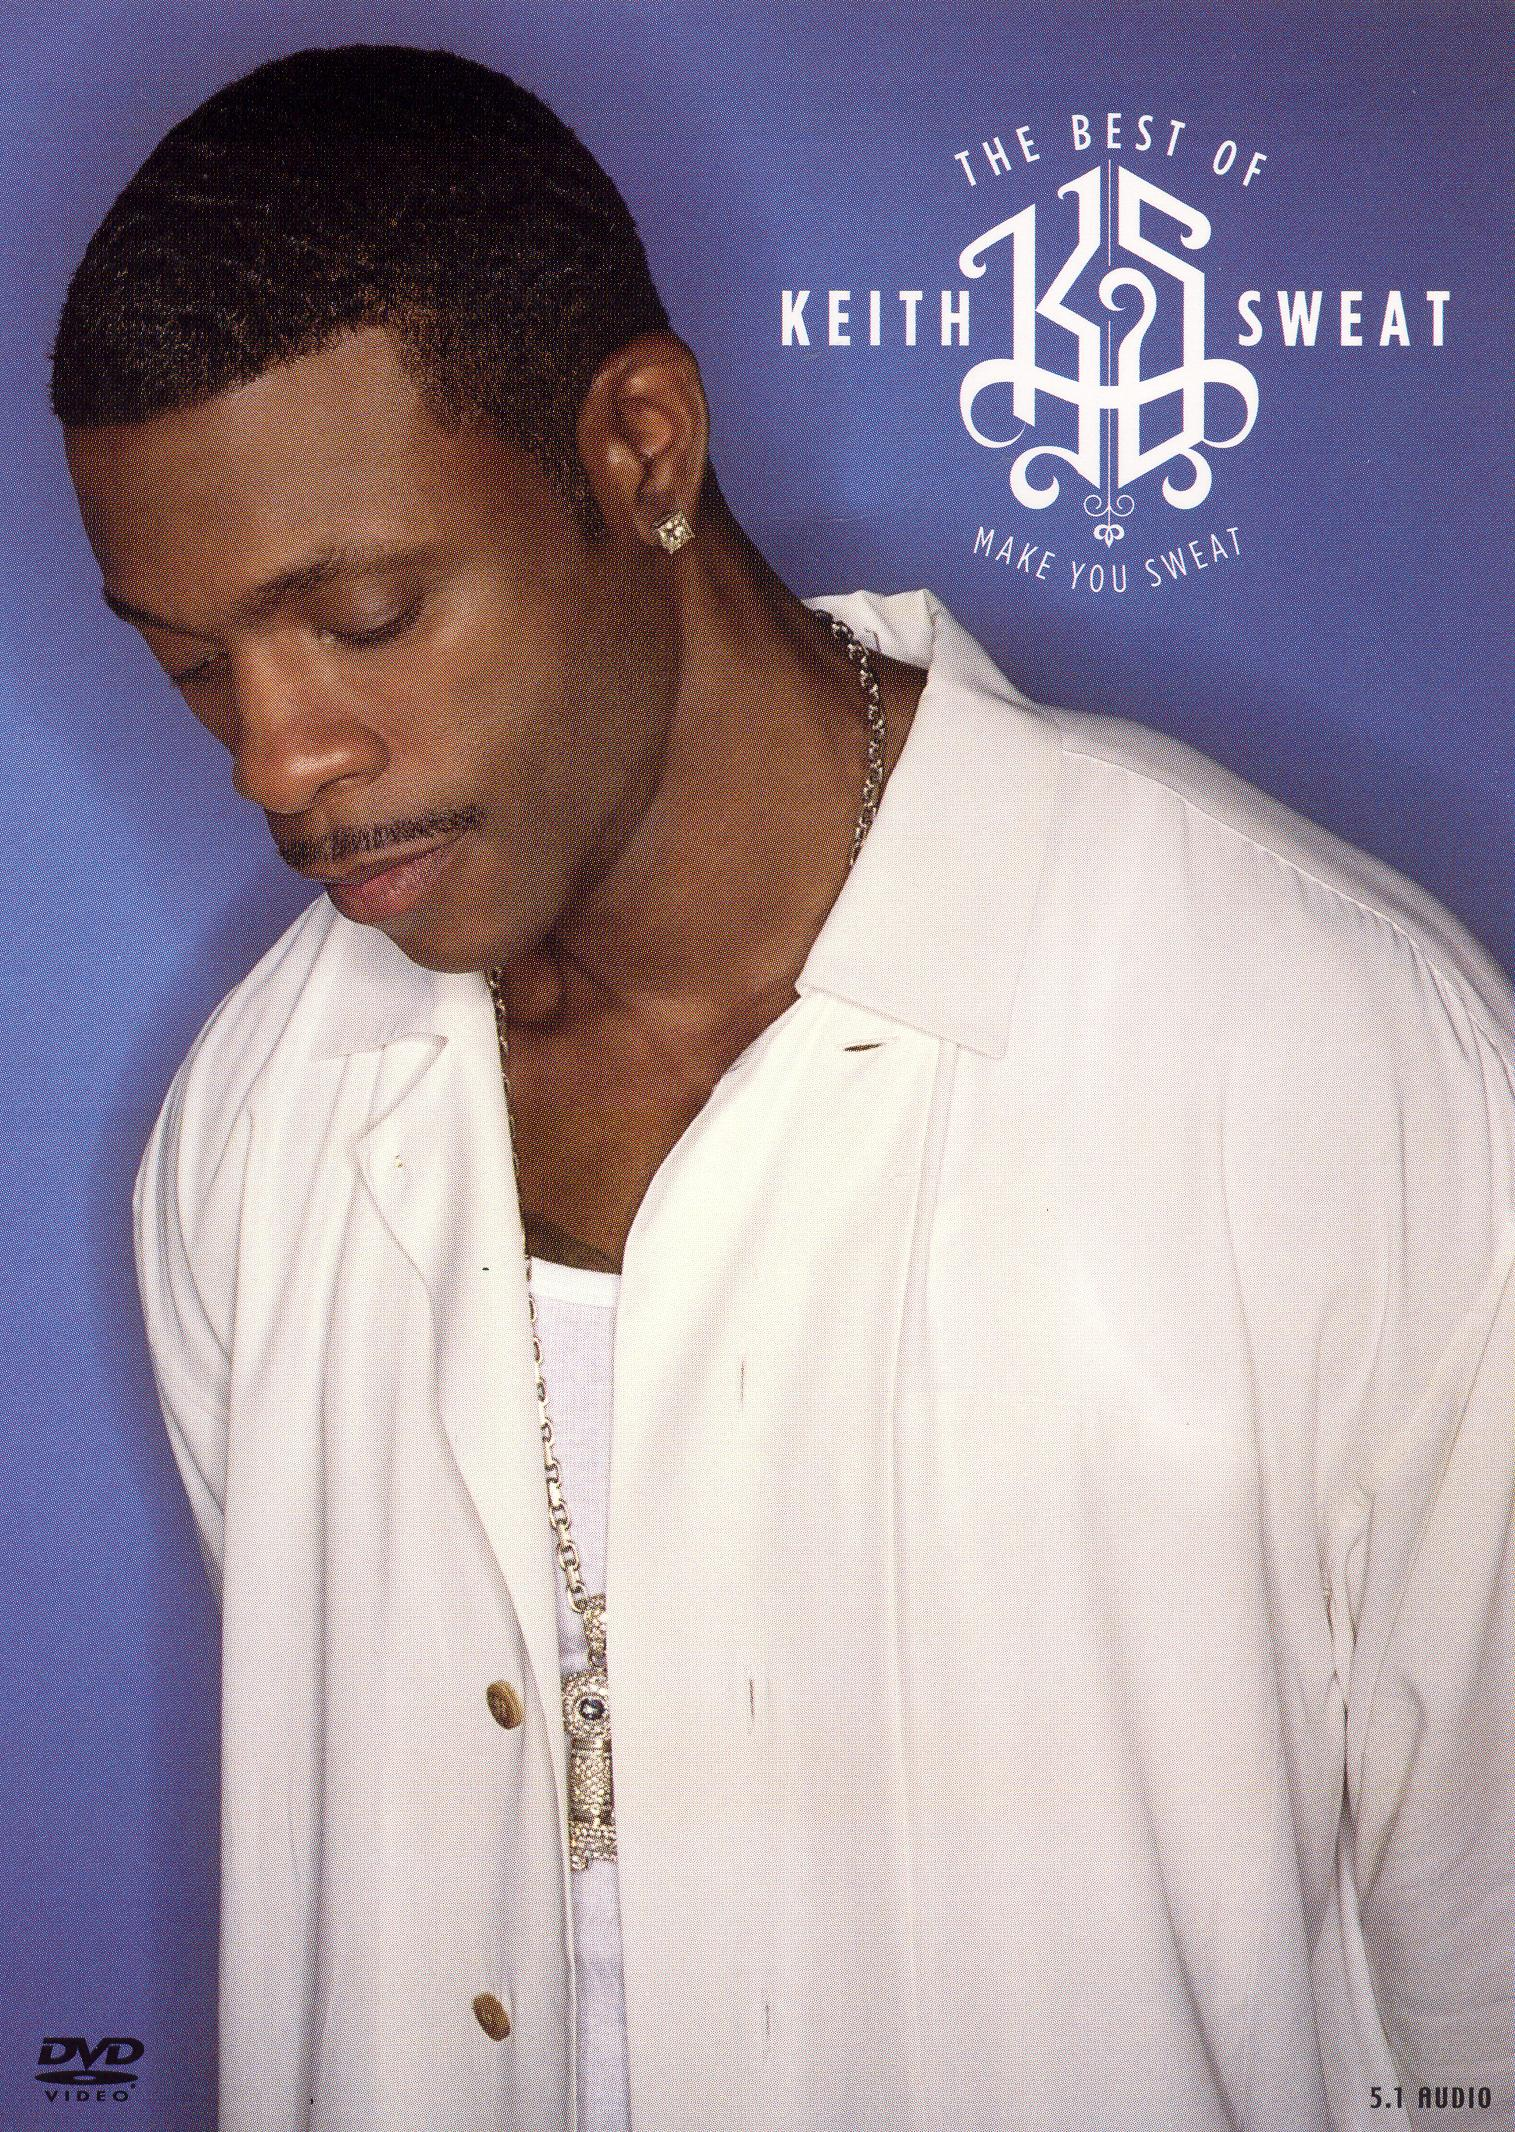 Keith Sweat: The Best of Keith Sweat - Make You Sweat - The Video Collection